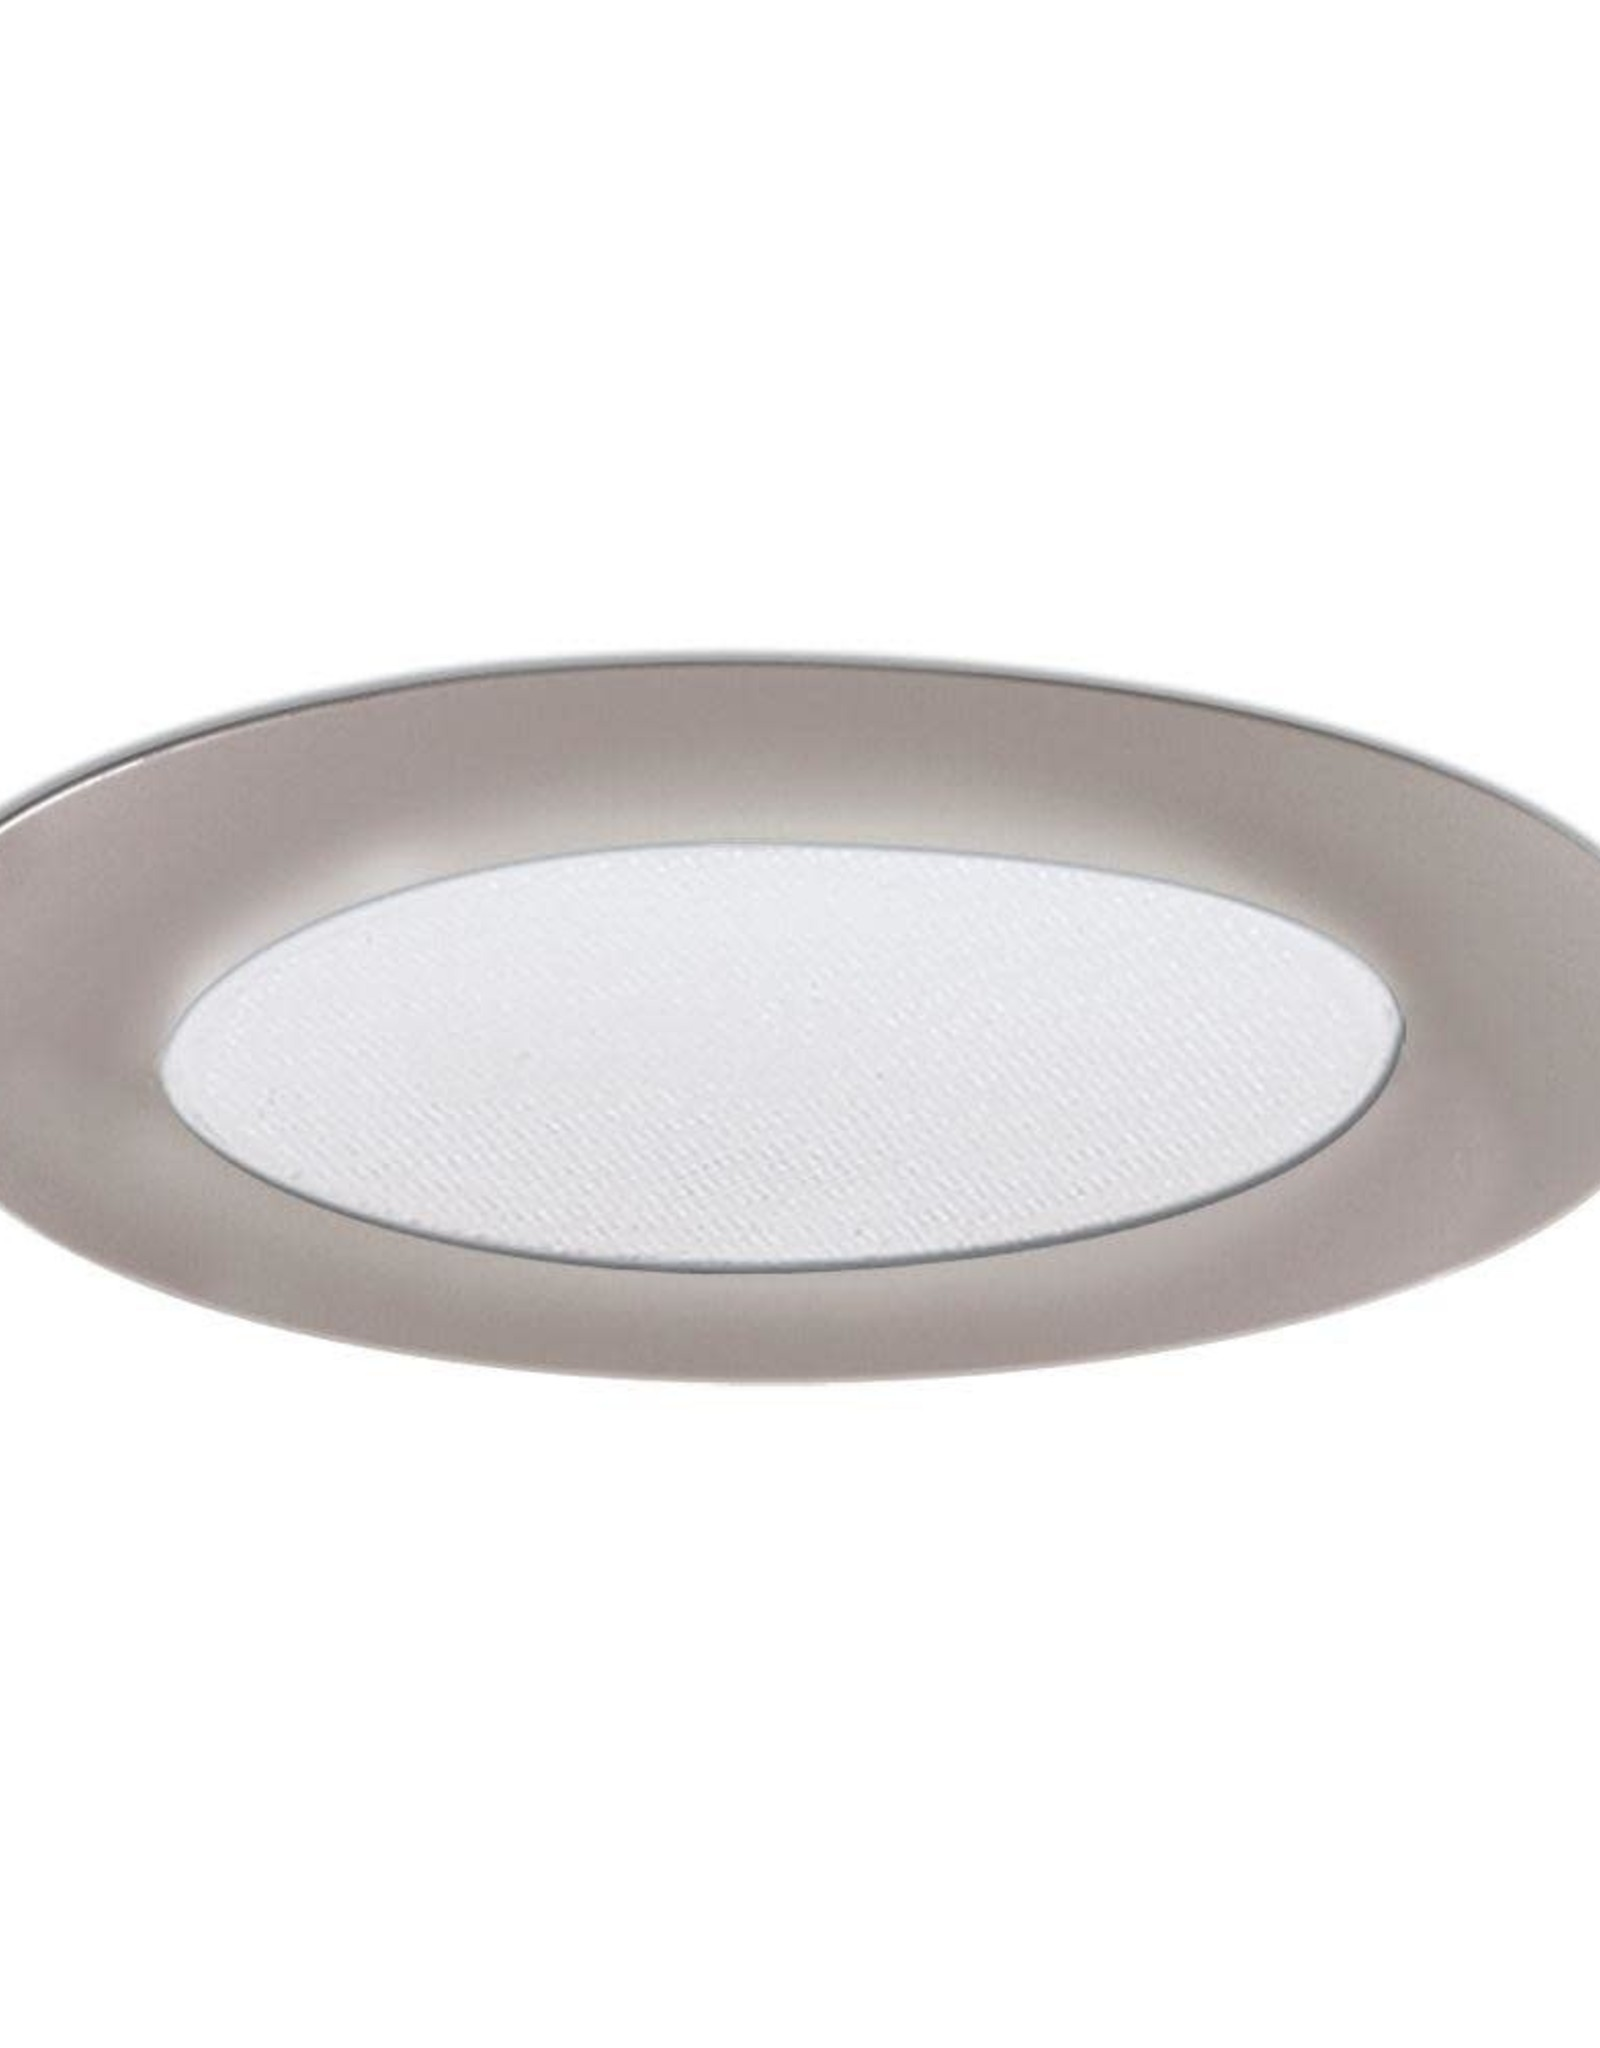 6 in. Satin Nickel Recessed Ceiling Light Shower Trim with Albalite Glass Lens